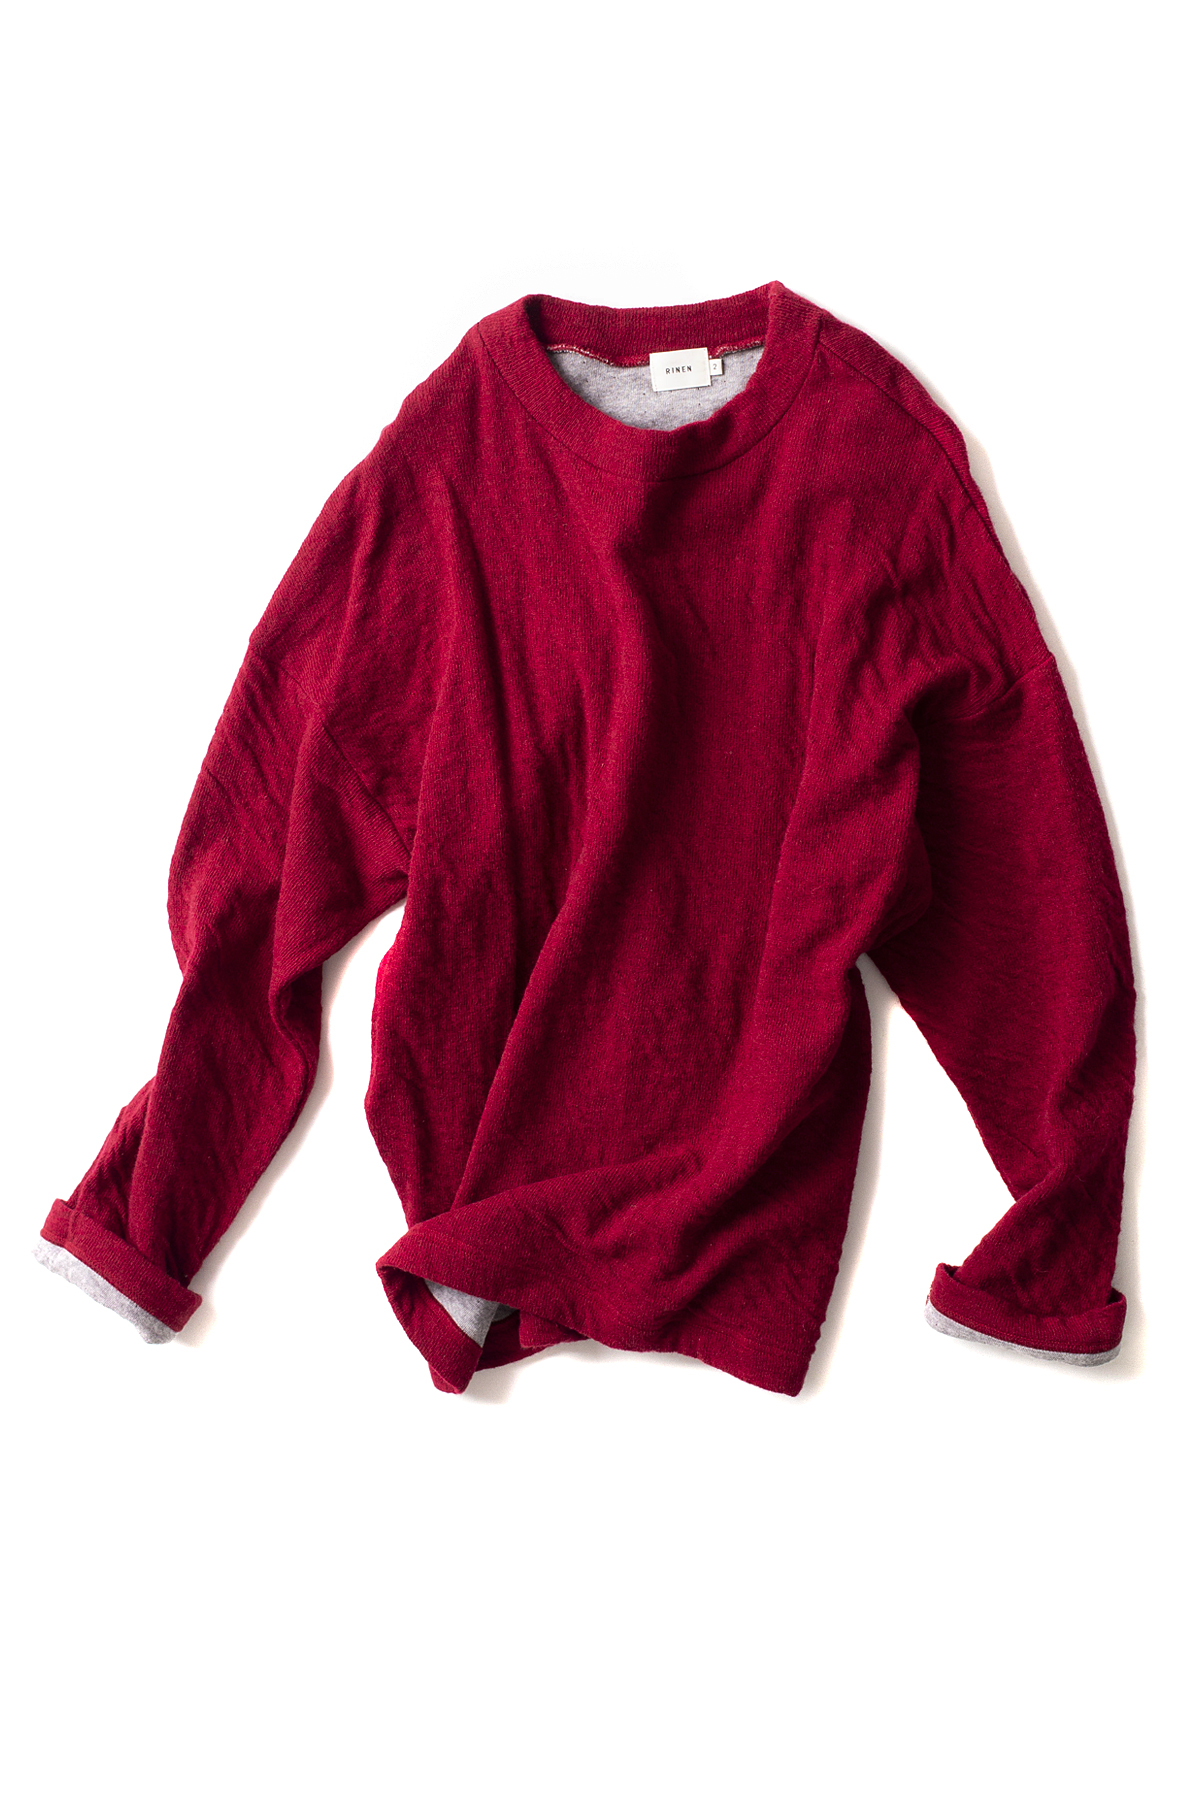 RINEN : Wool Cotton Crewneck 13906 (Red)